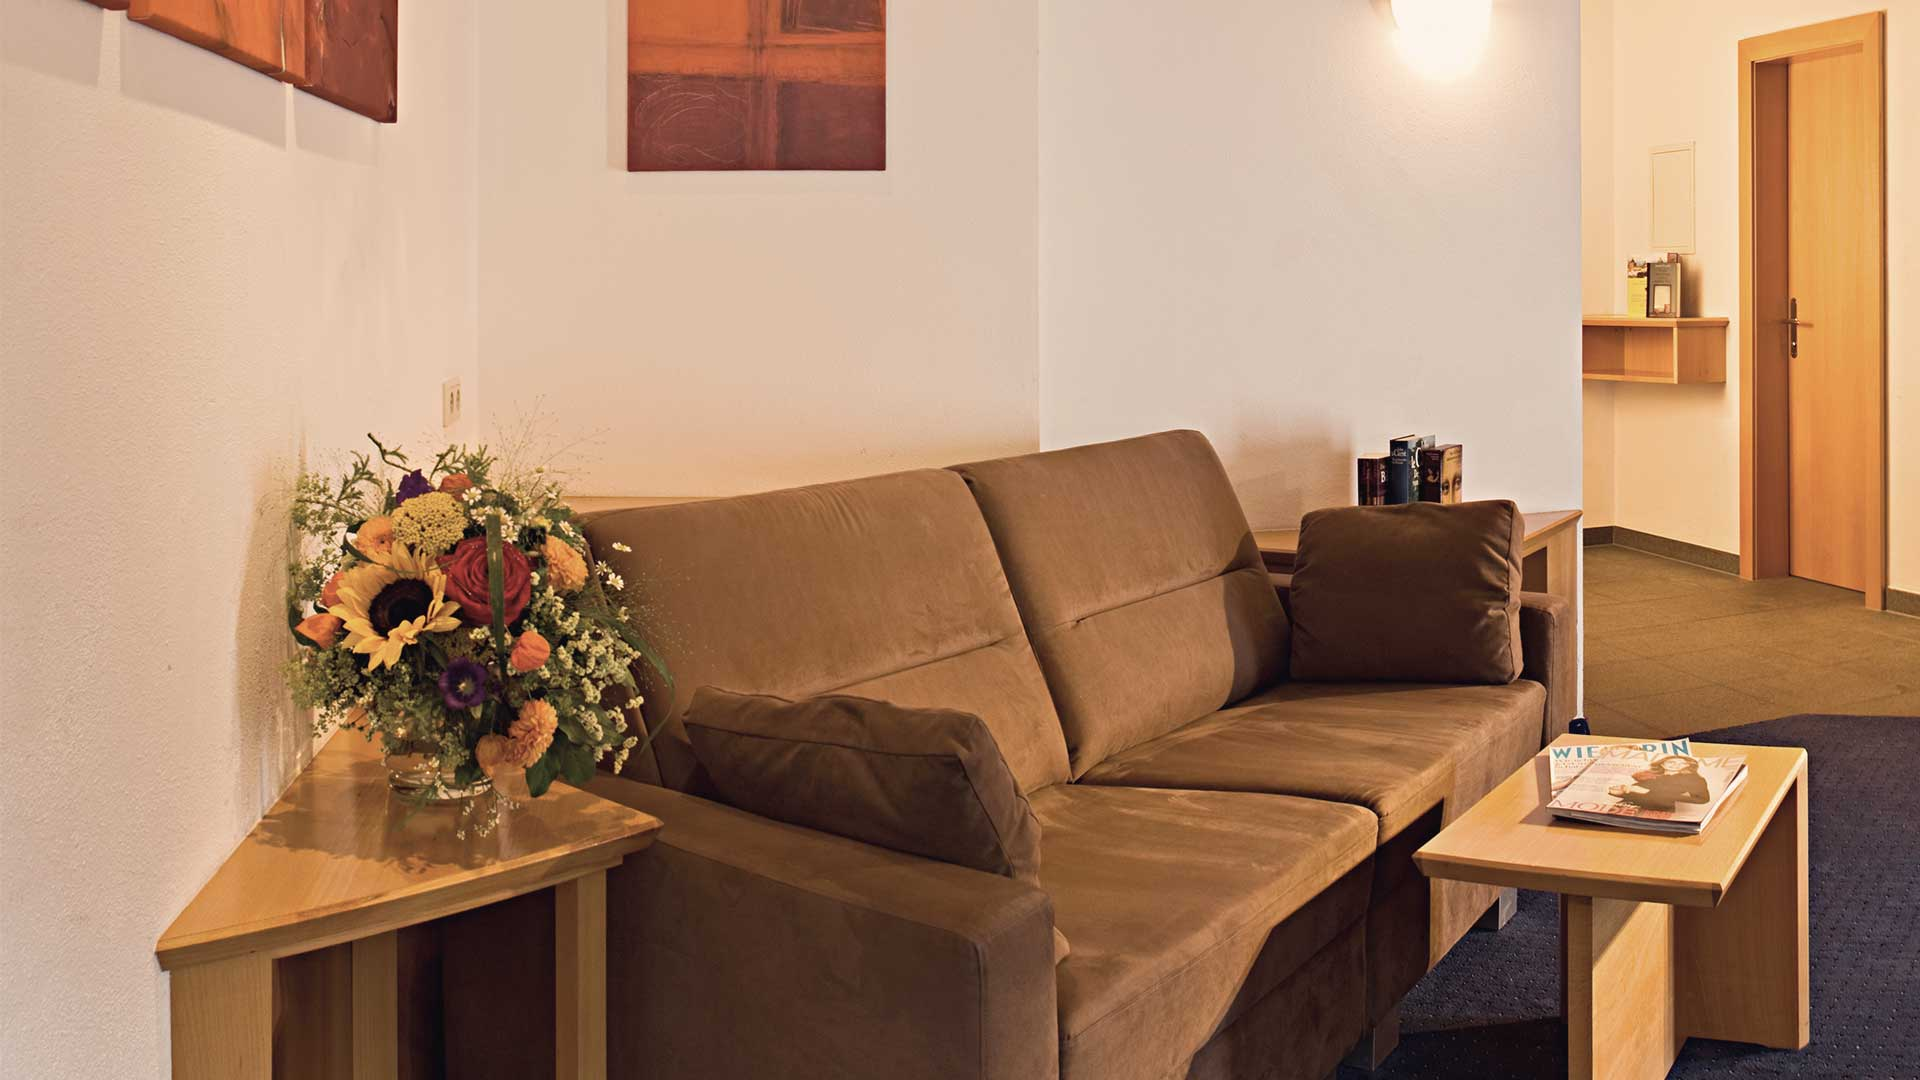 Couch Gradiva Apartments